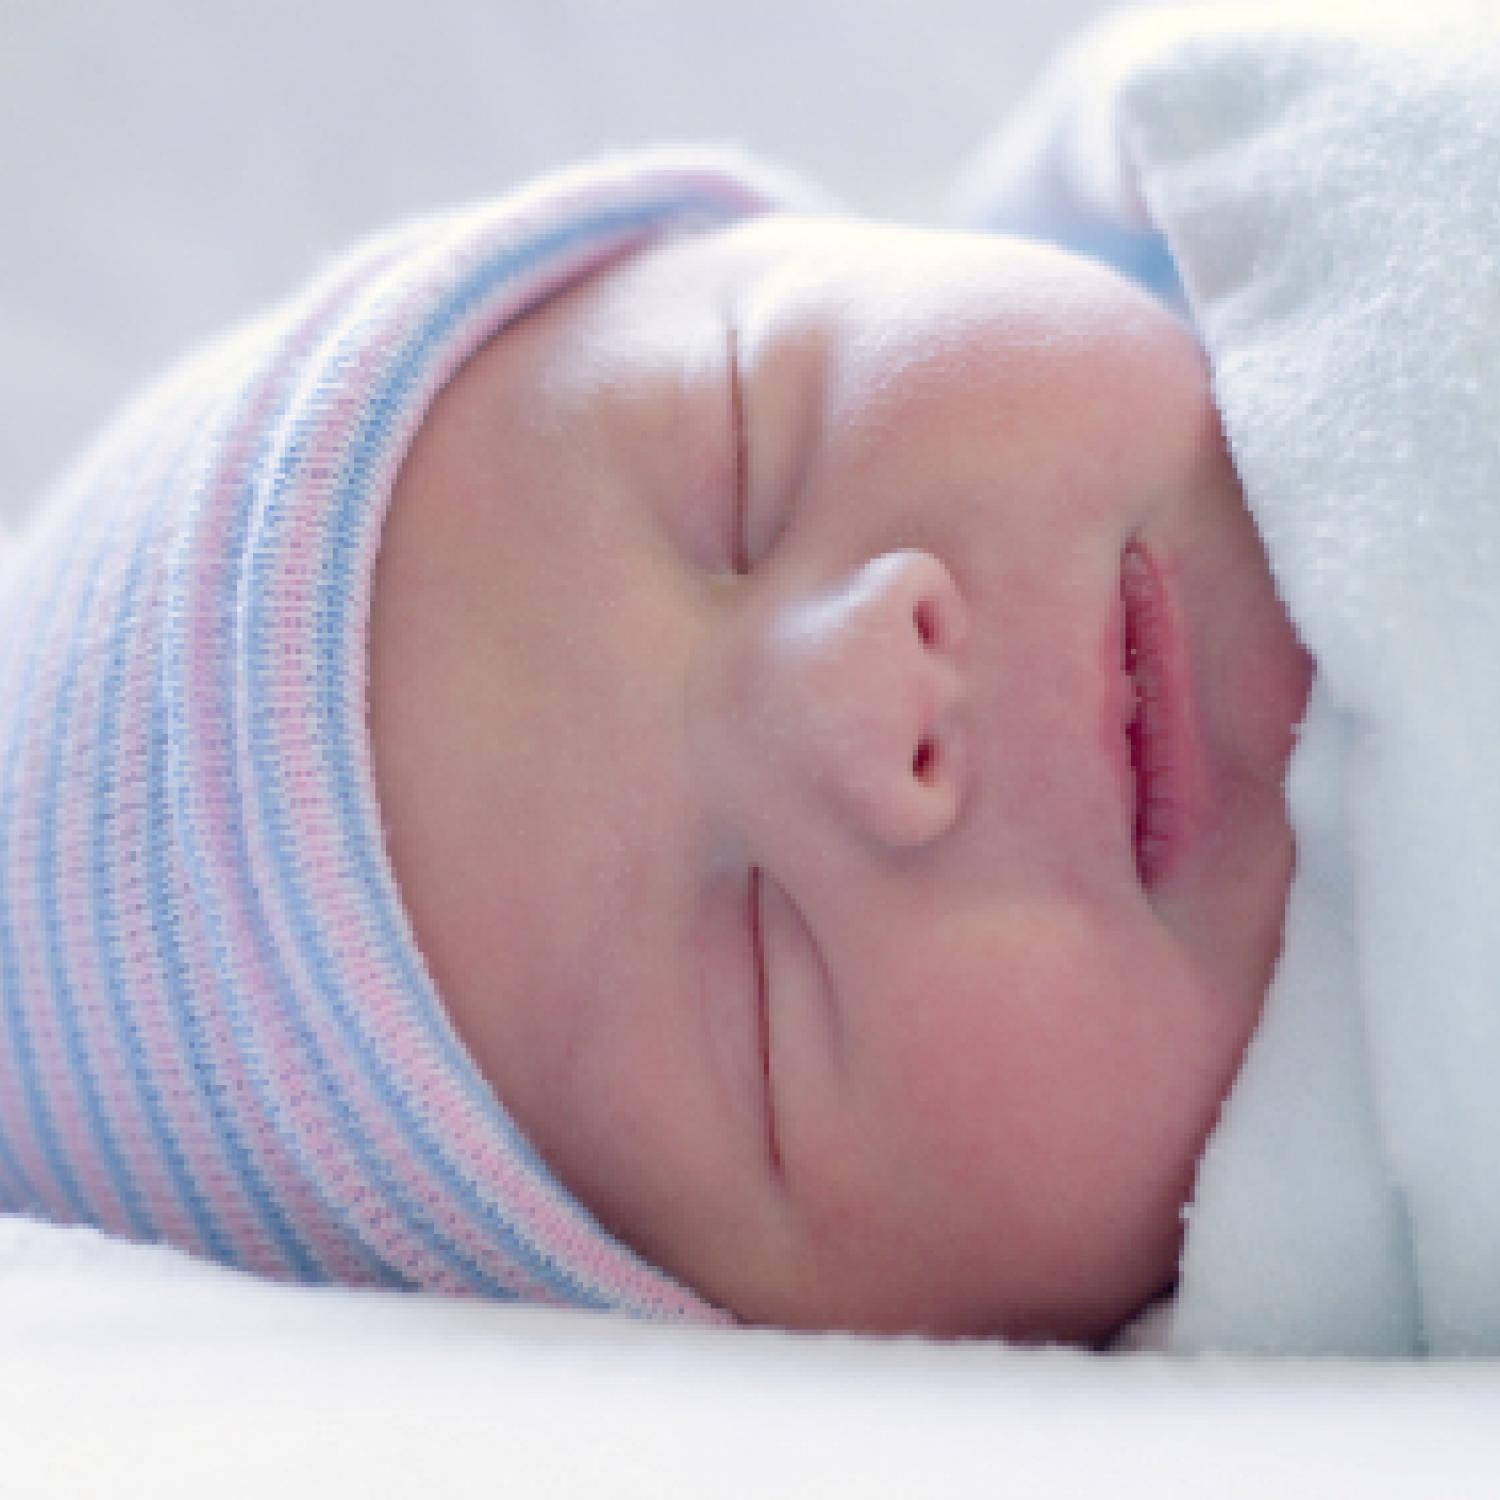 Health benefits of circumcision outweigh the risks for